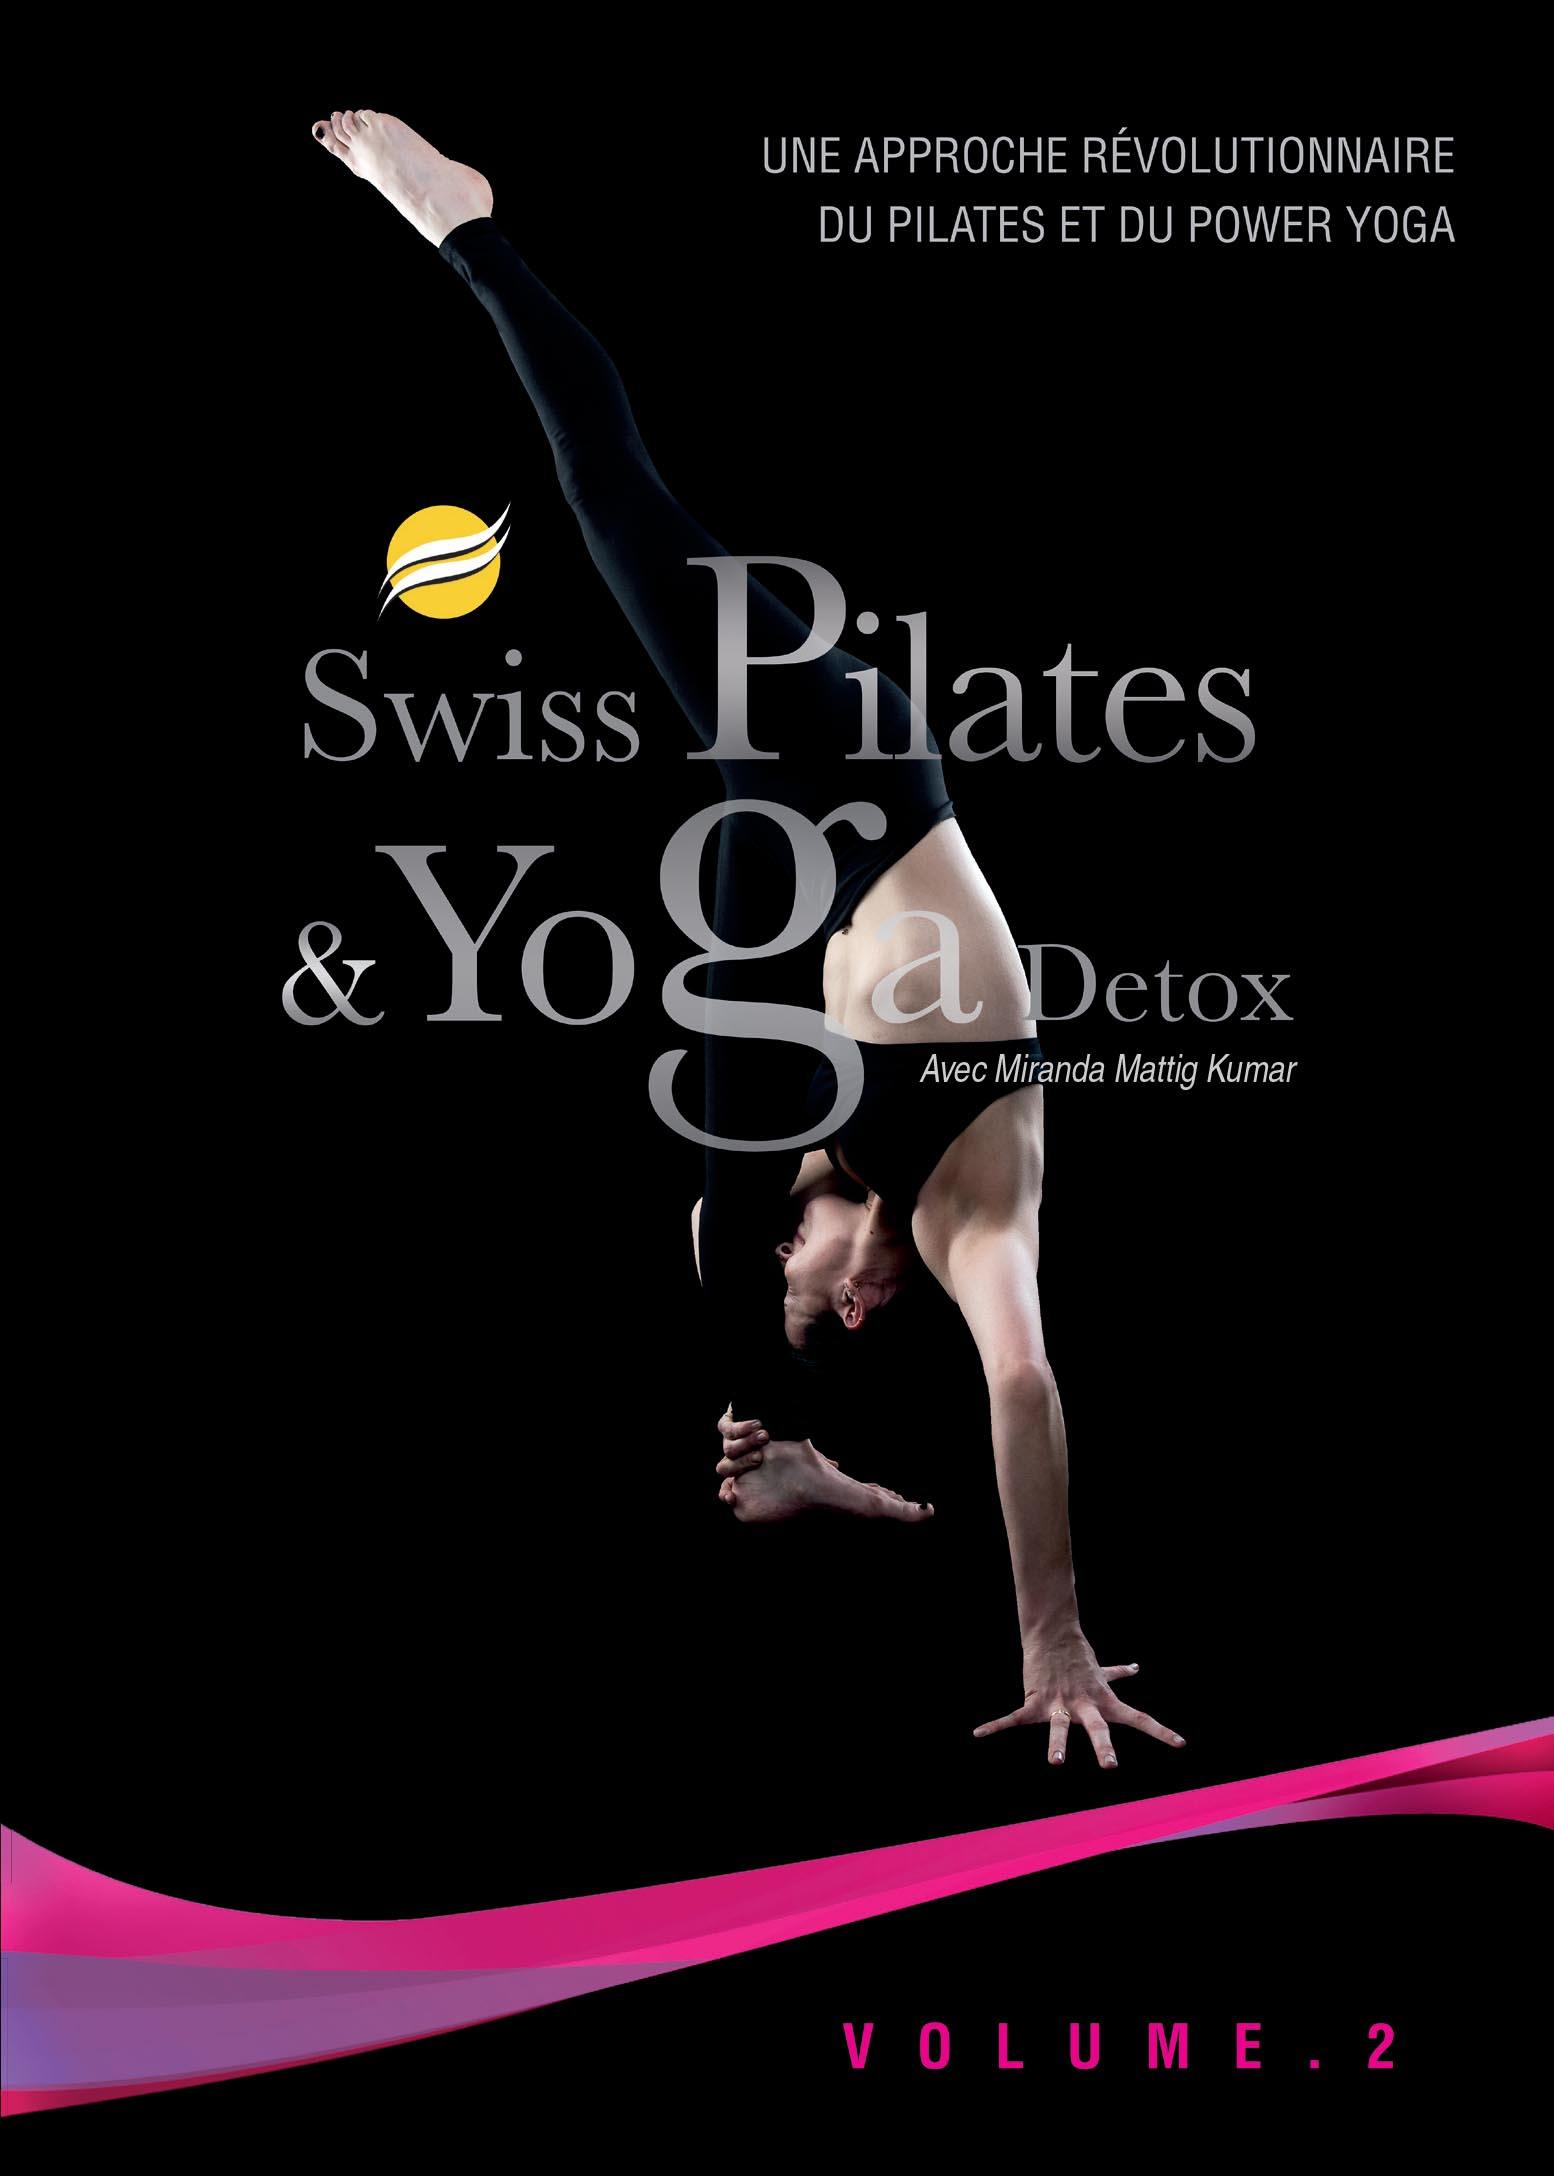 Swiss pilates & yoga detox v2 - dvd